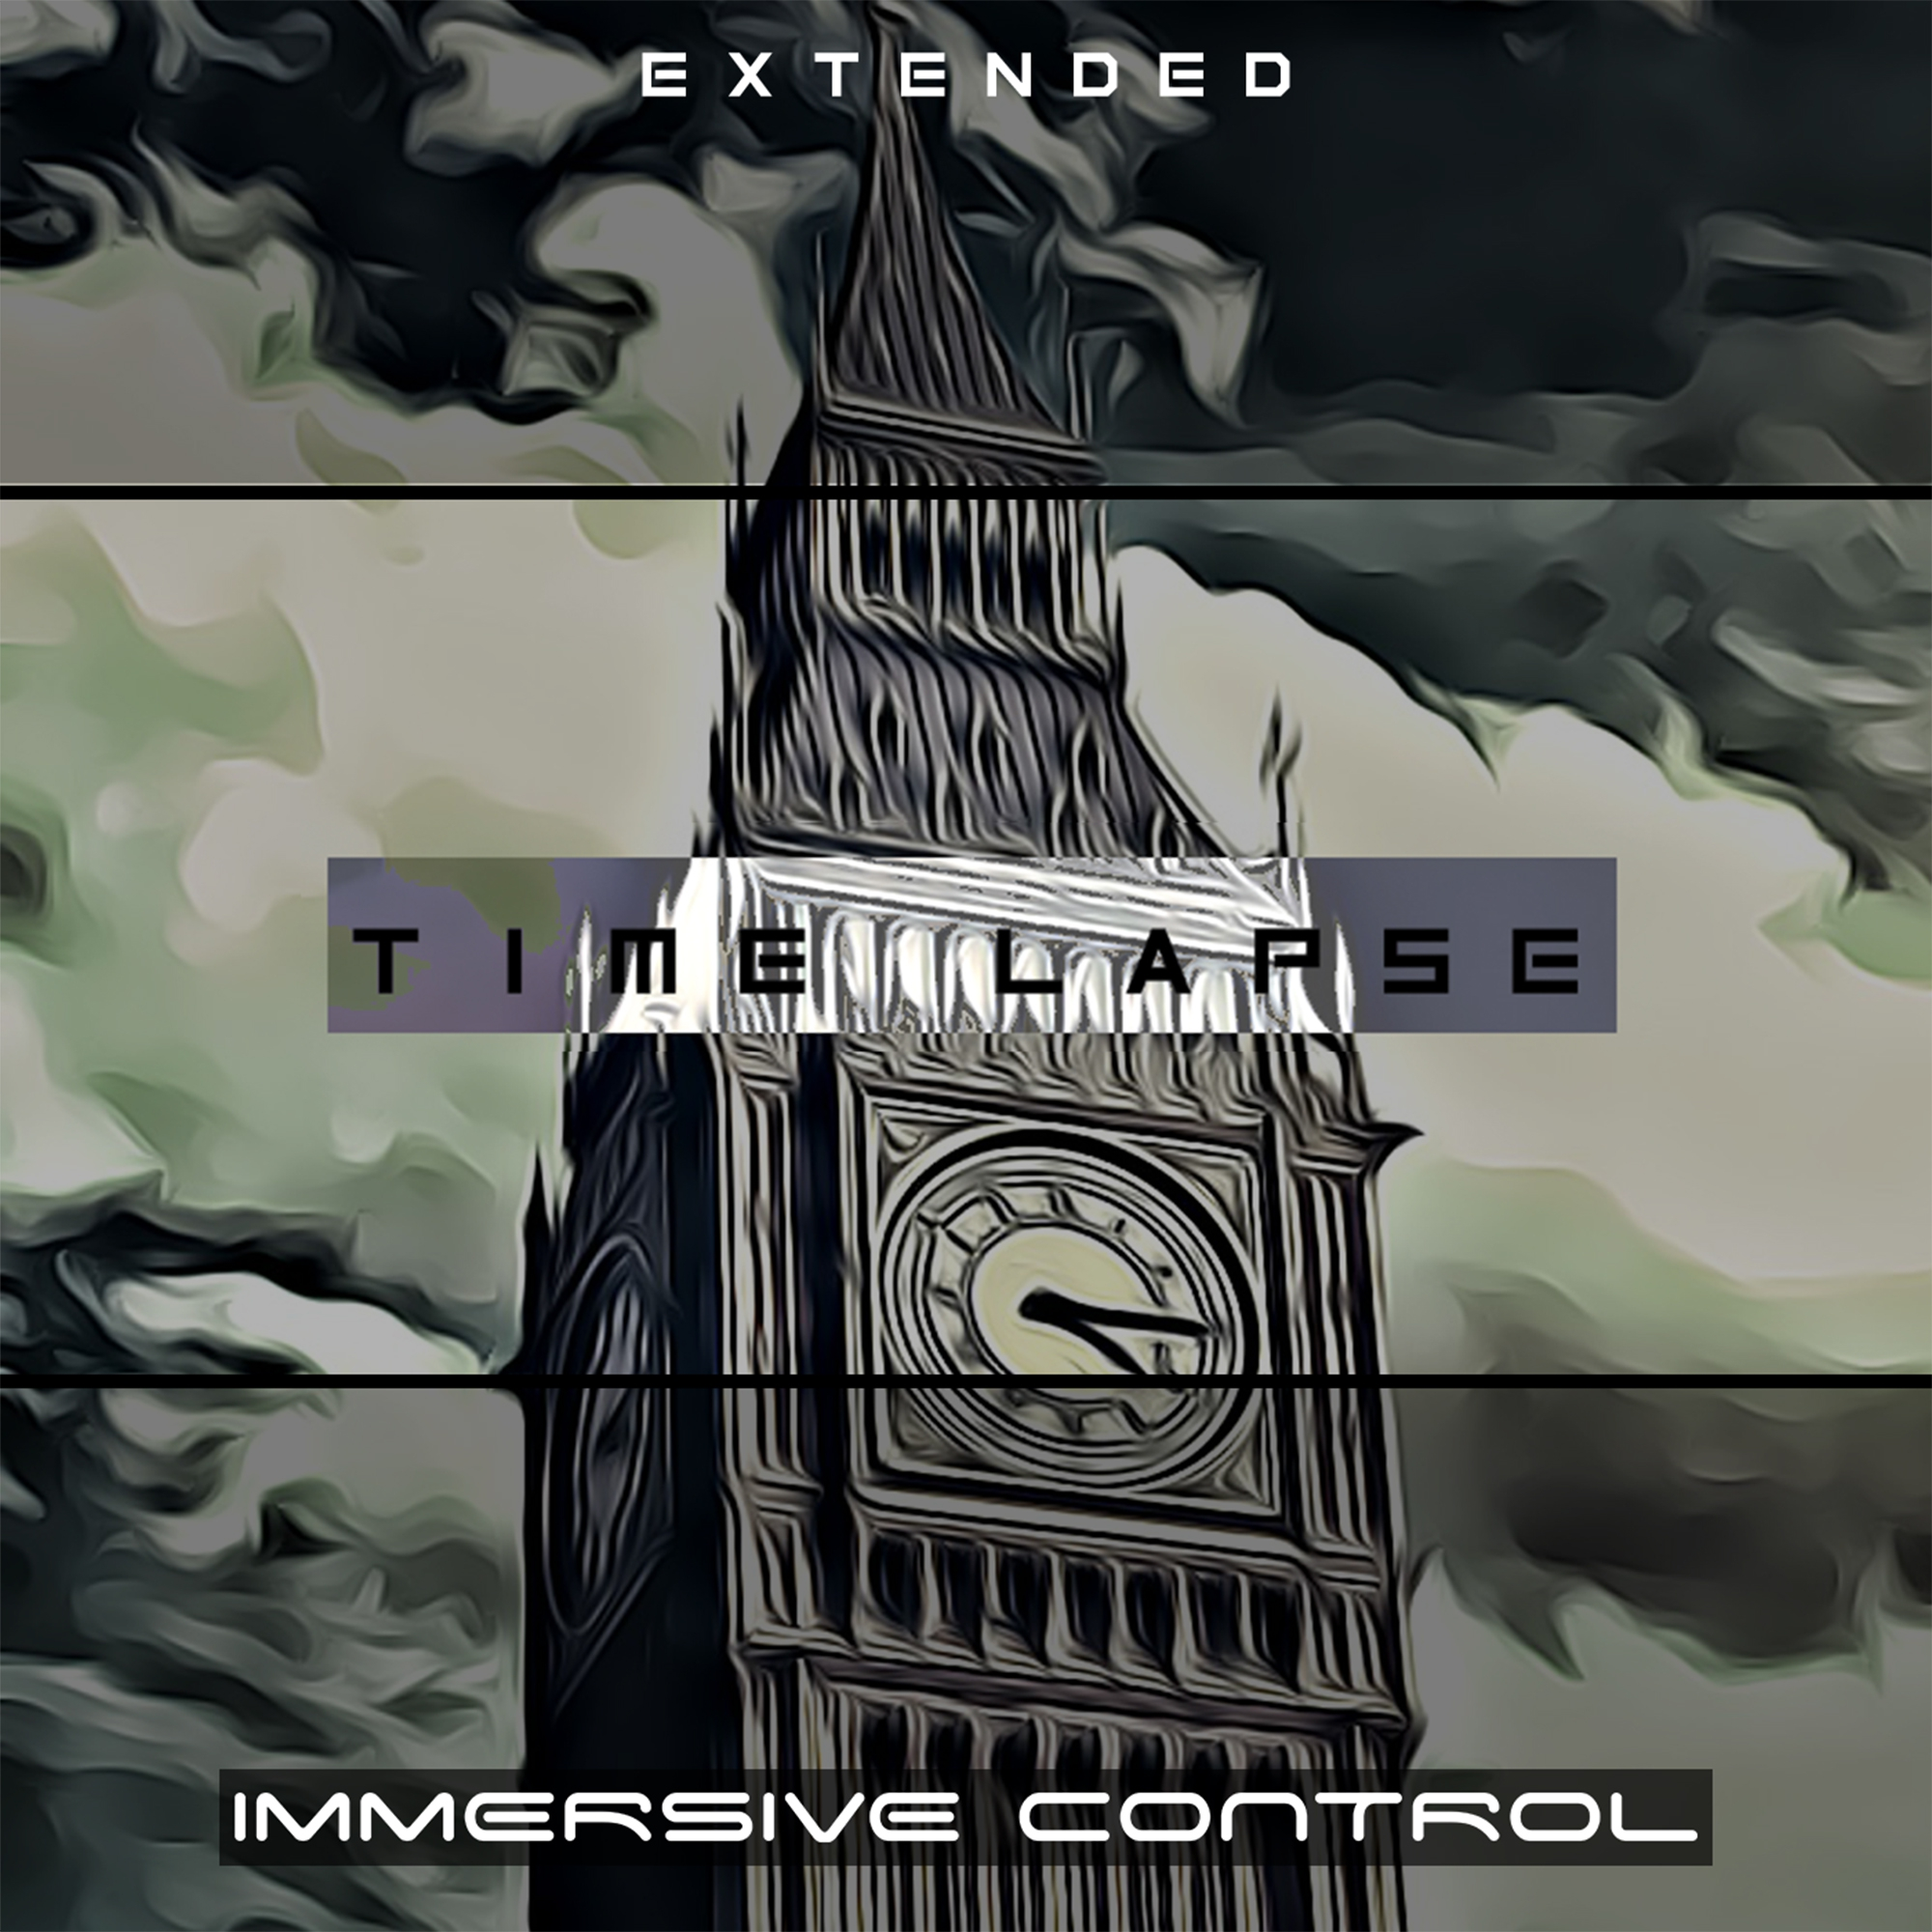 Immersive Control - Time Lapse (Extended)